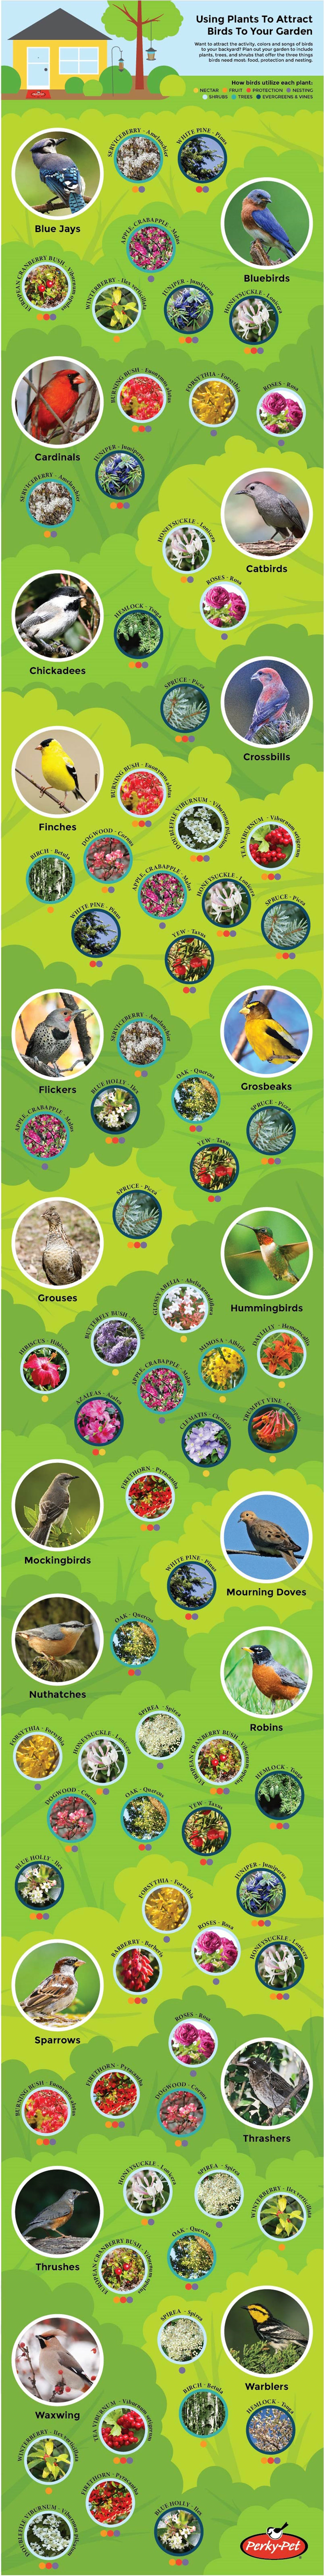 Using Plants to Attract Backyard Birds to Your Garden Infographic